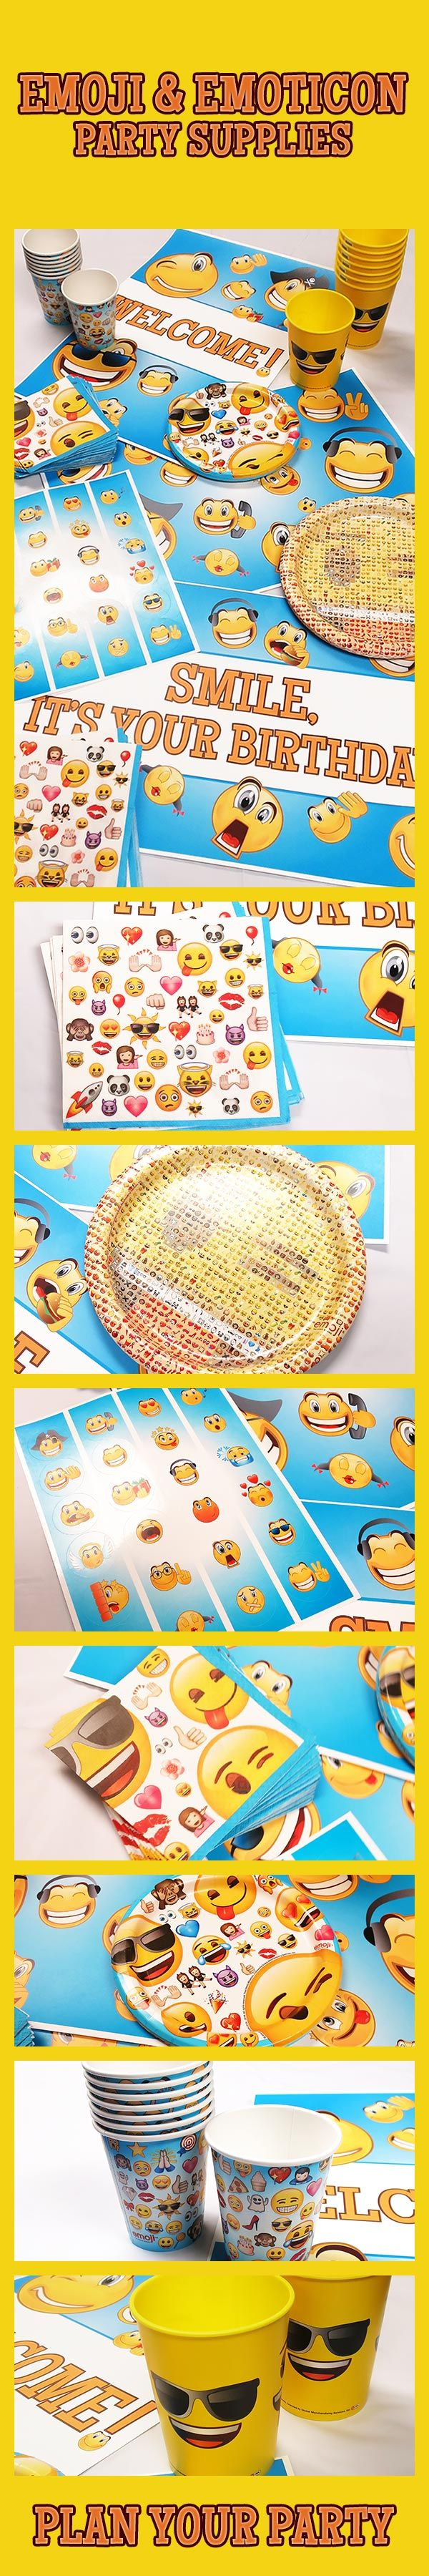 Plan your Emoji birthday party! You'll <3 these :D Emoji & Emoticon party supplies. Plates, napkins, cups, party signs, stickers, favors, and much are all feature everyone's favorite emojis and emoticons. Visit today to start planning your party: http://www.discountpartysupplies.com/boy-party-supplies/emoji-party-supplies?utm_source=Pinterest&utm_medium=Social&utm_content=EmojiSkyScraperImage&utm_campaign=emoji_Promoted_Pin